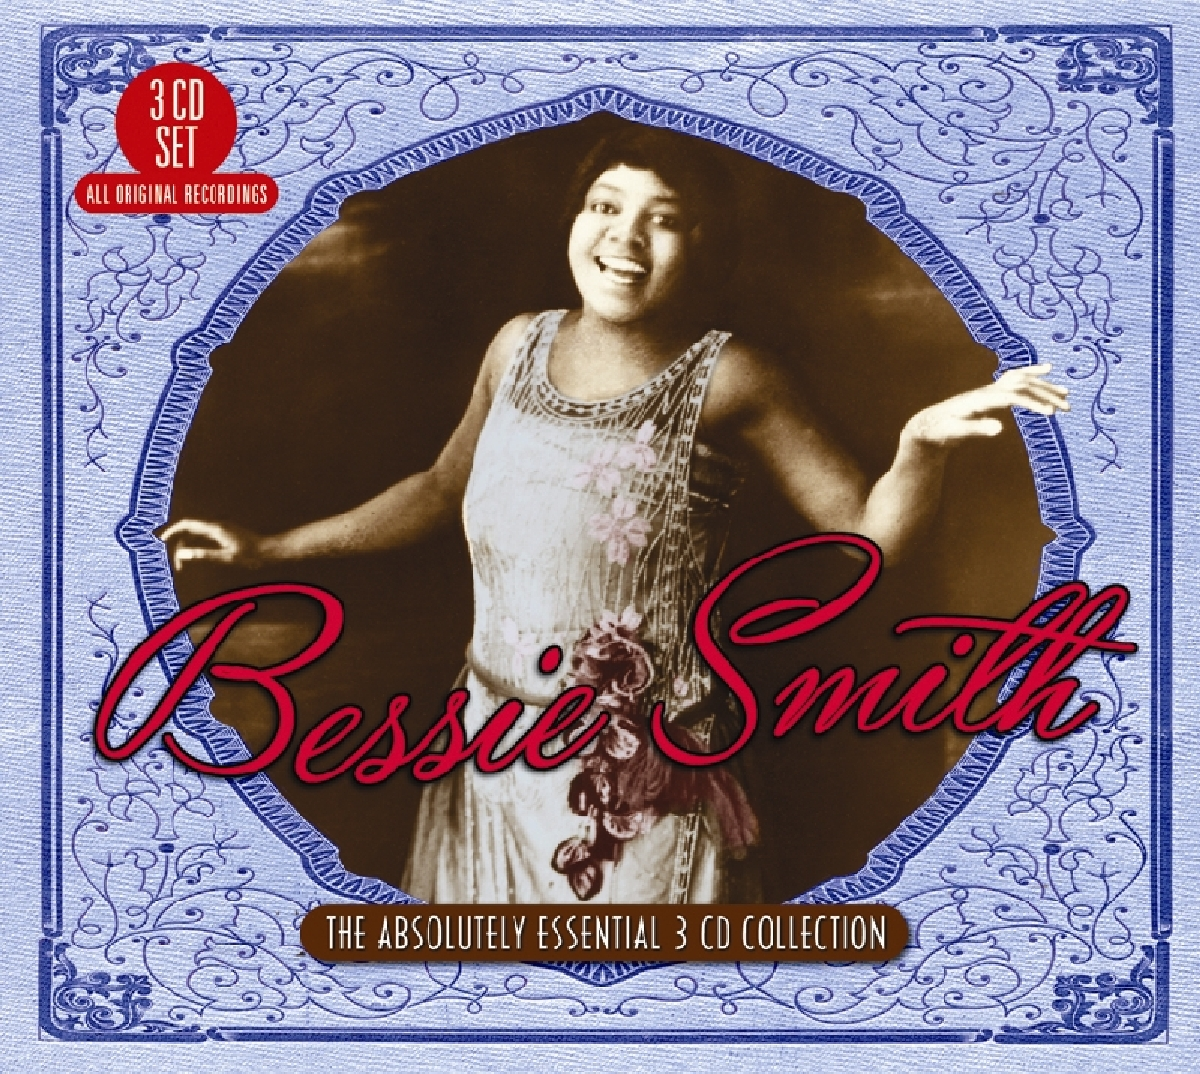 Bessie Smith - Absolutely Essential Collection